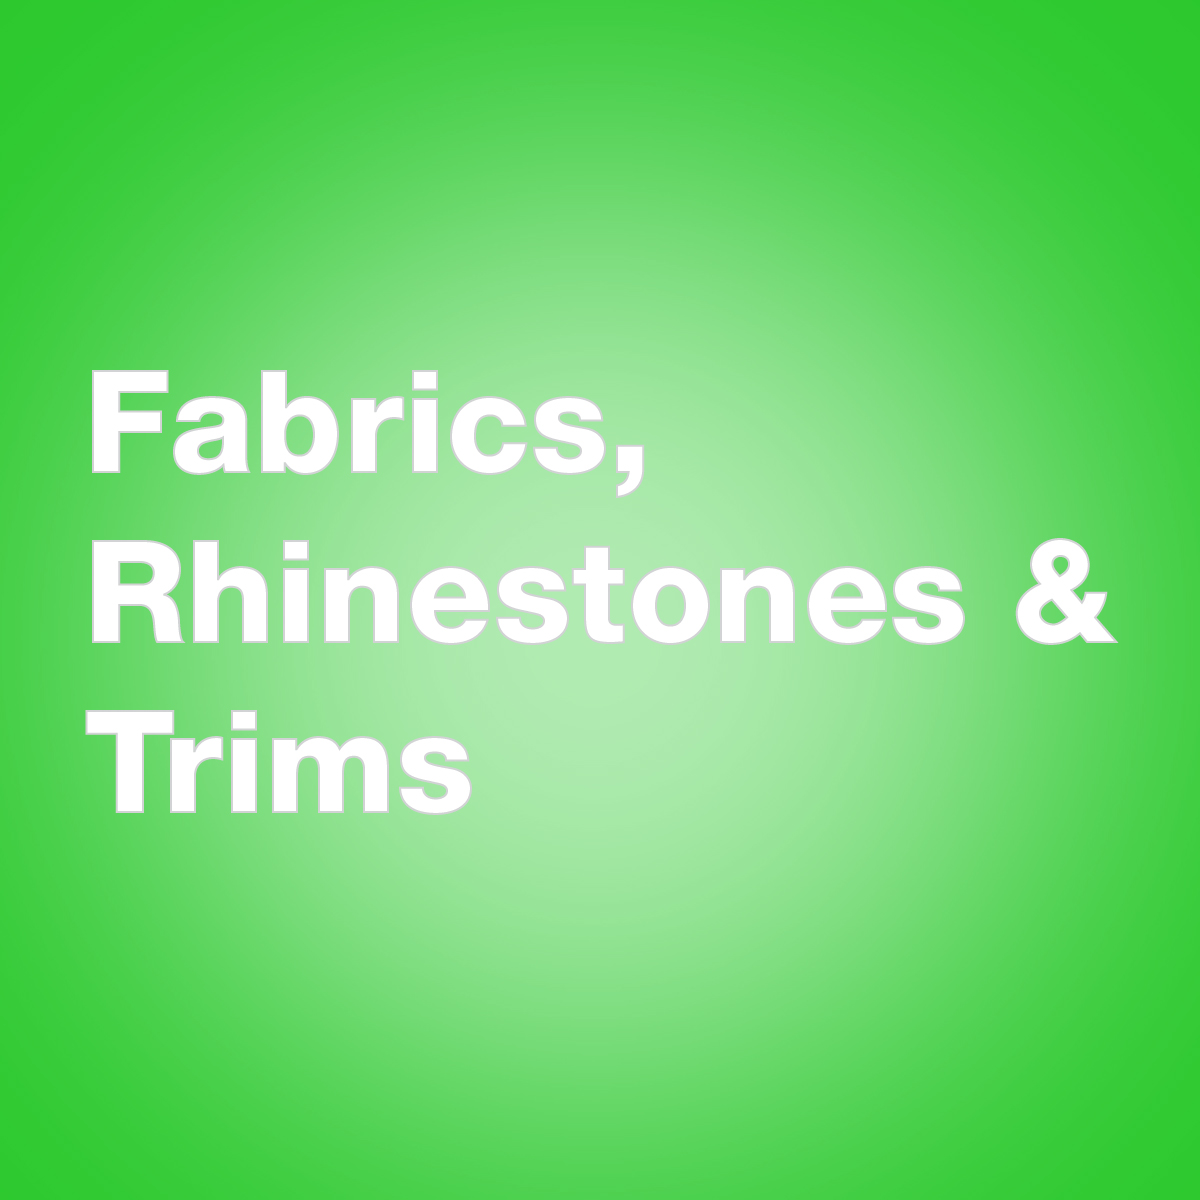 fabrics rhinestones and trims